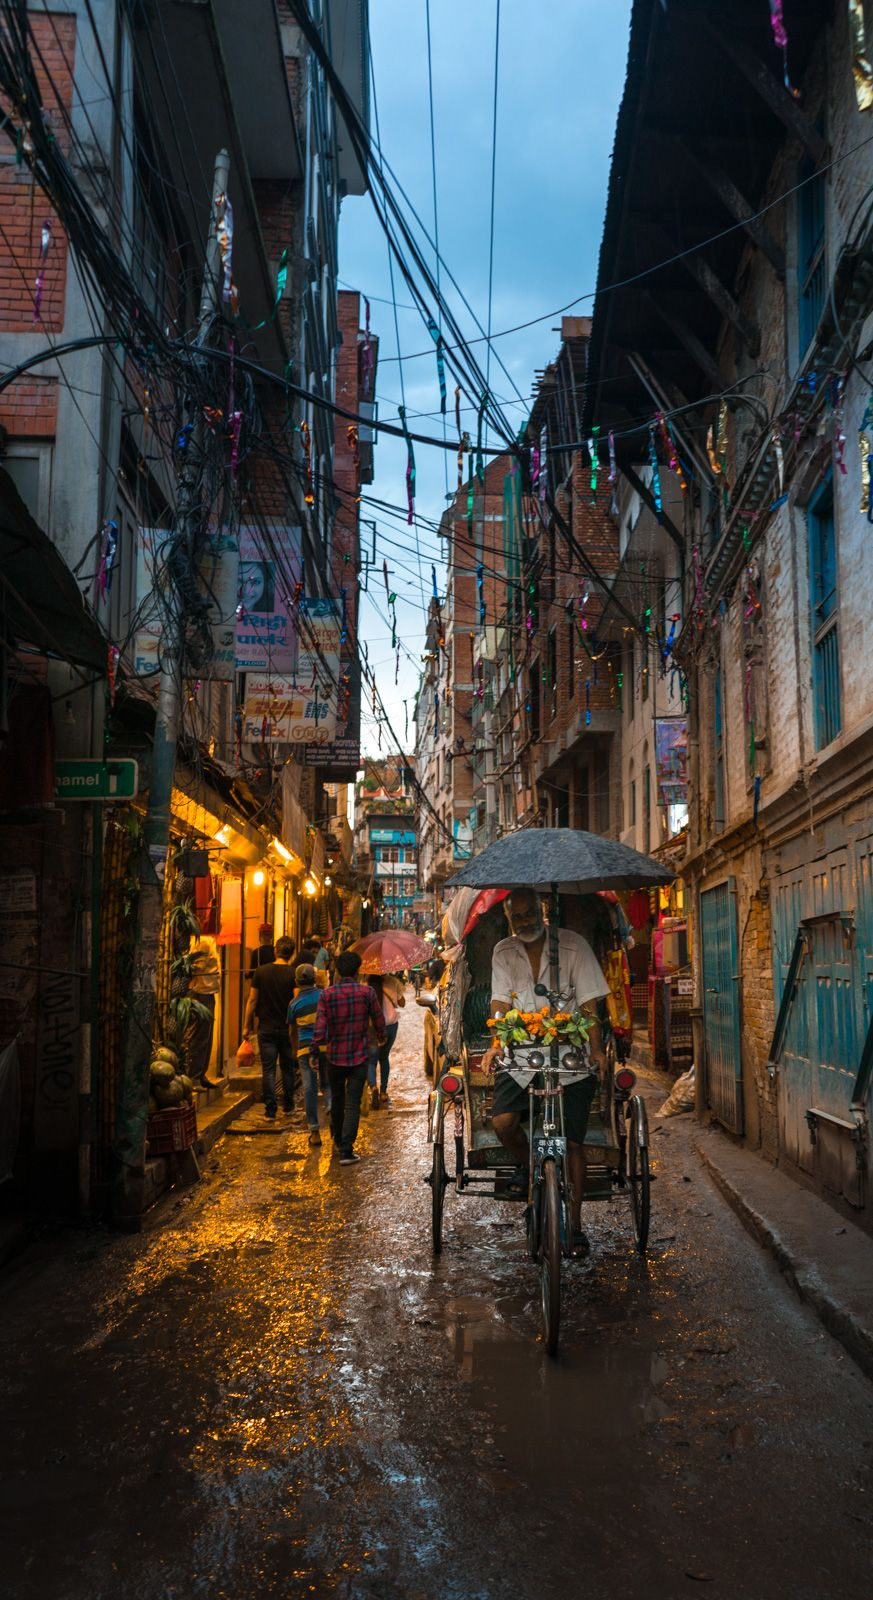 A cycle rickshaw driver pedaling along a market street on a monsoon evening in the Thamel area of Kathmandu, Nepal.